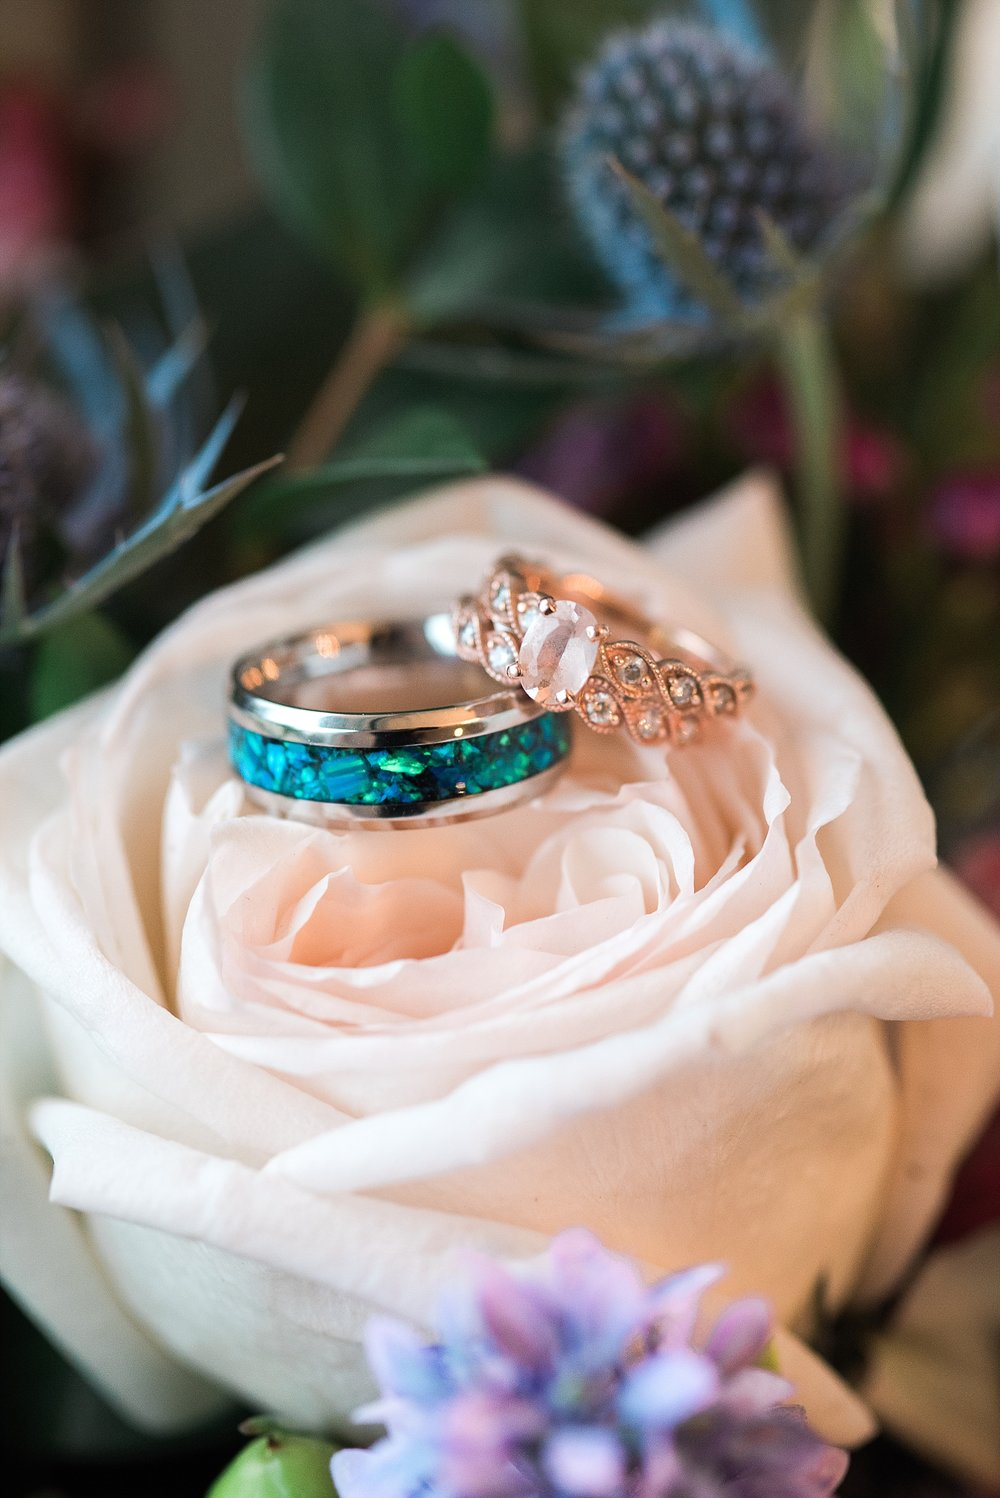 ring-shot-colorful-bouquet